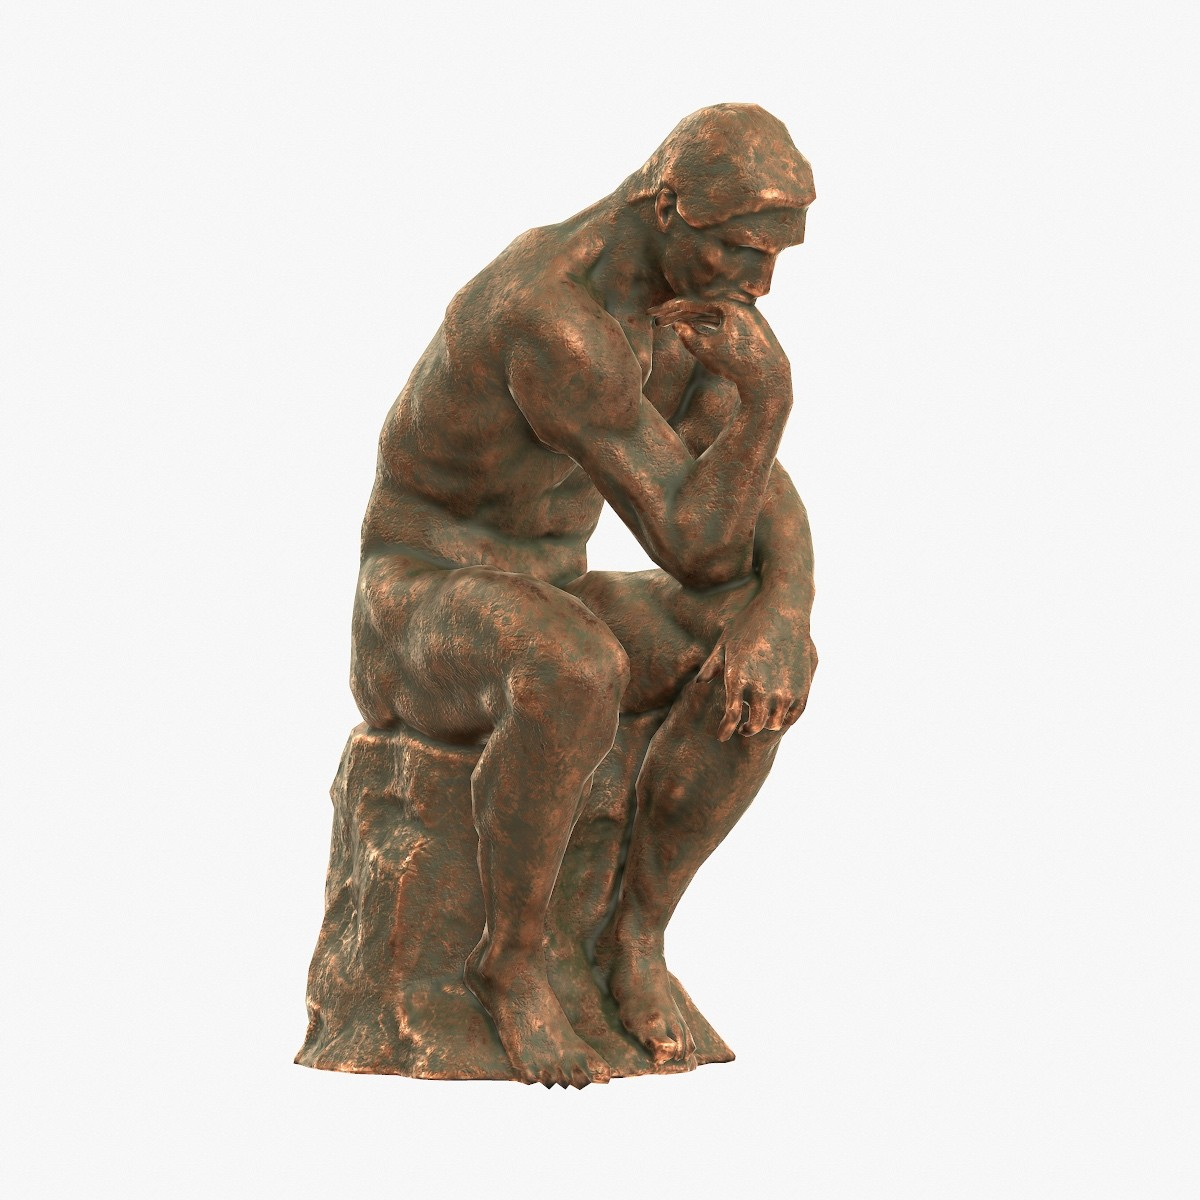 3d fbx old sculpture rodin thinker